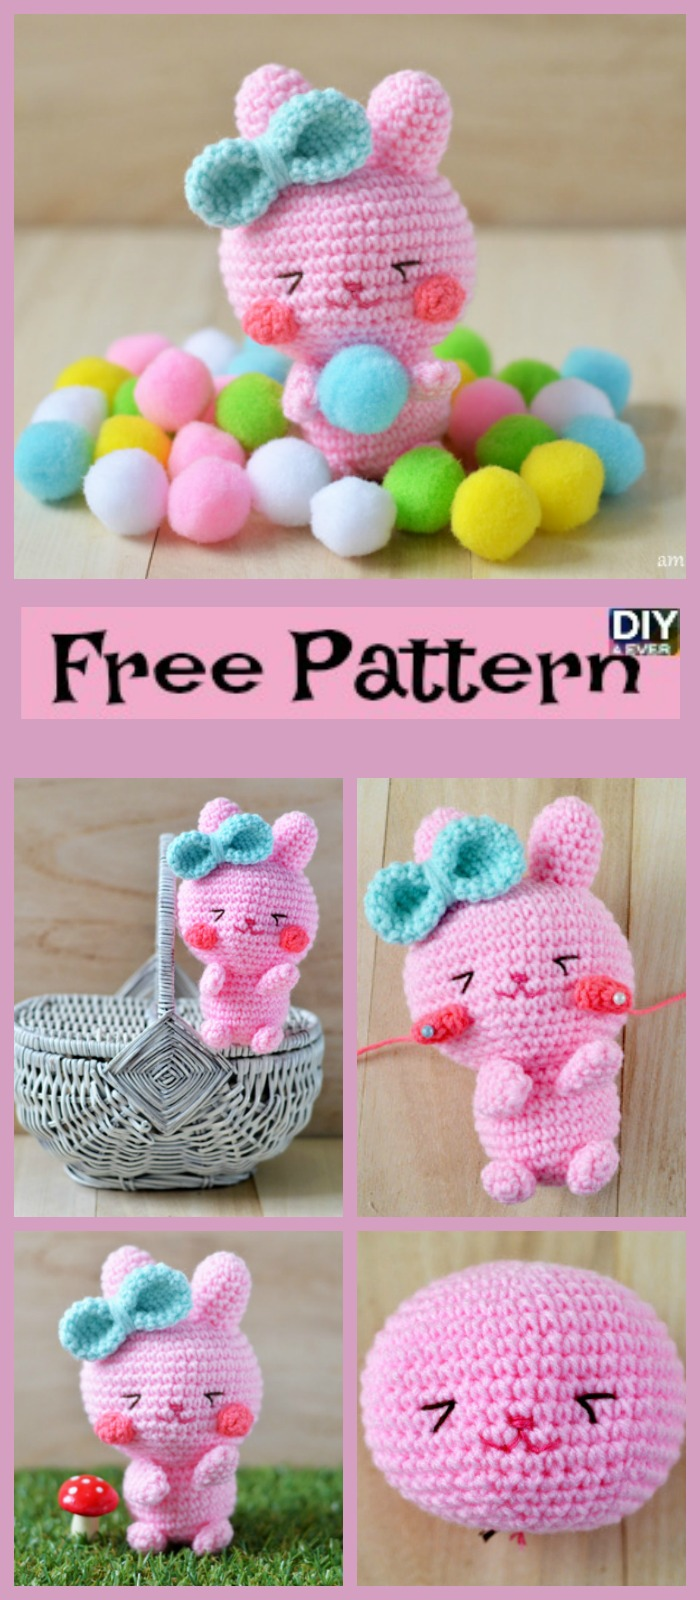 diy4ever- Crochet Easter Bunny Amigurumi - Free Pattern